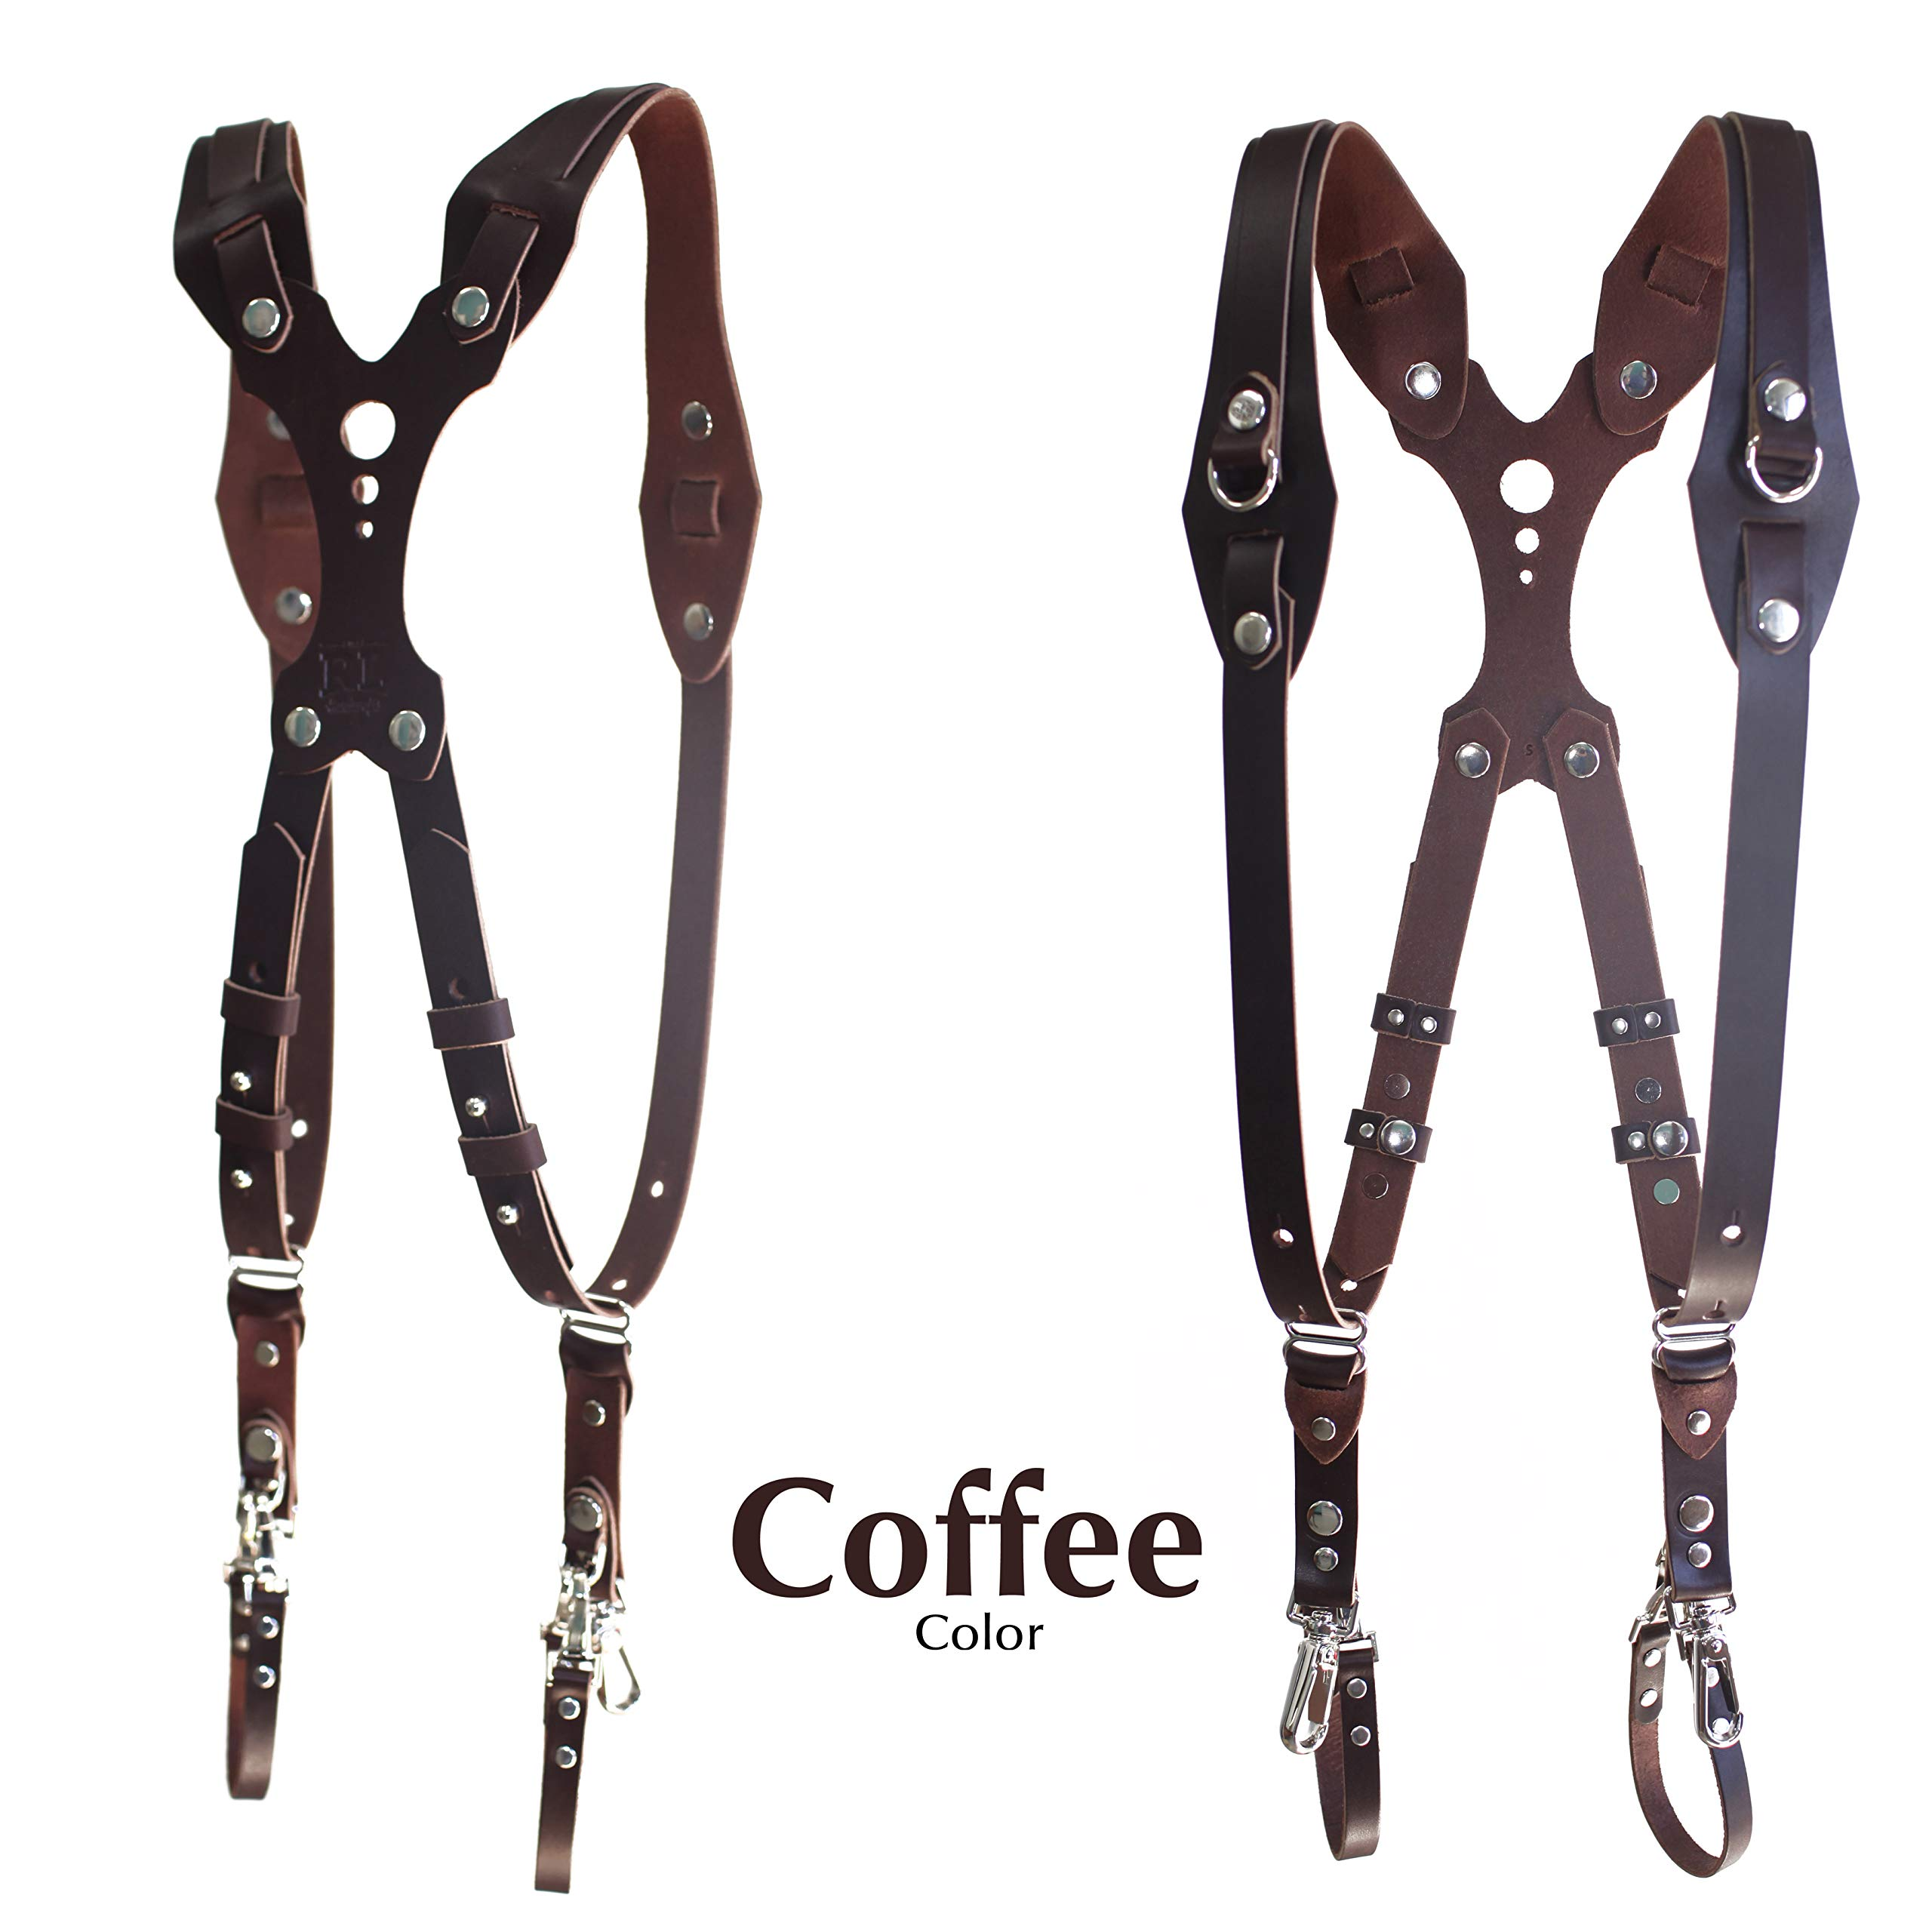 Clydesdale Lite-Dual Handmade Leather Camera Harness, Sling & Strap RL Handcrafts. DLSR, Mirrorless, Point & Shoot Made in The USA (Coffee, Large)